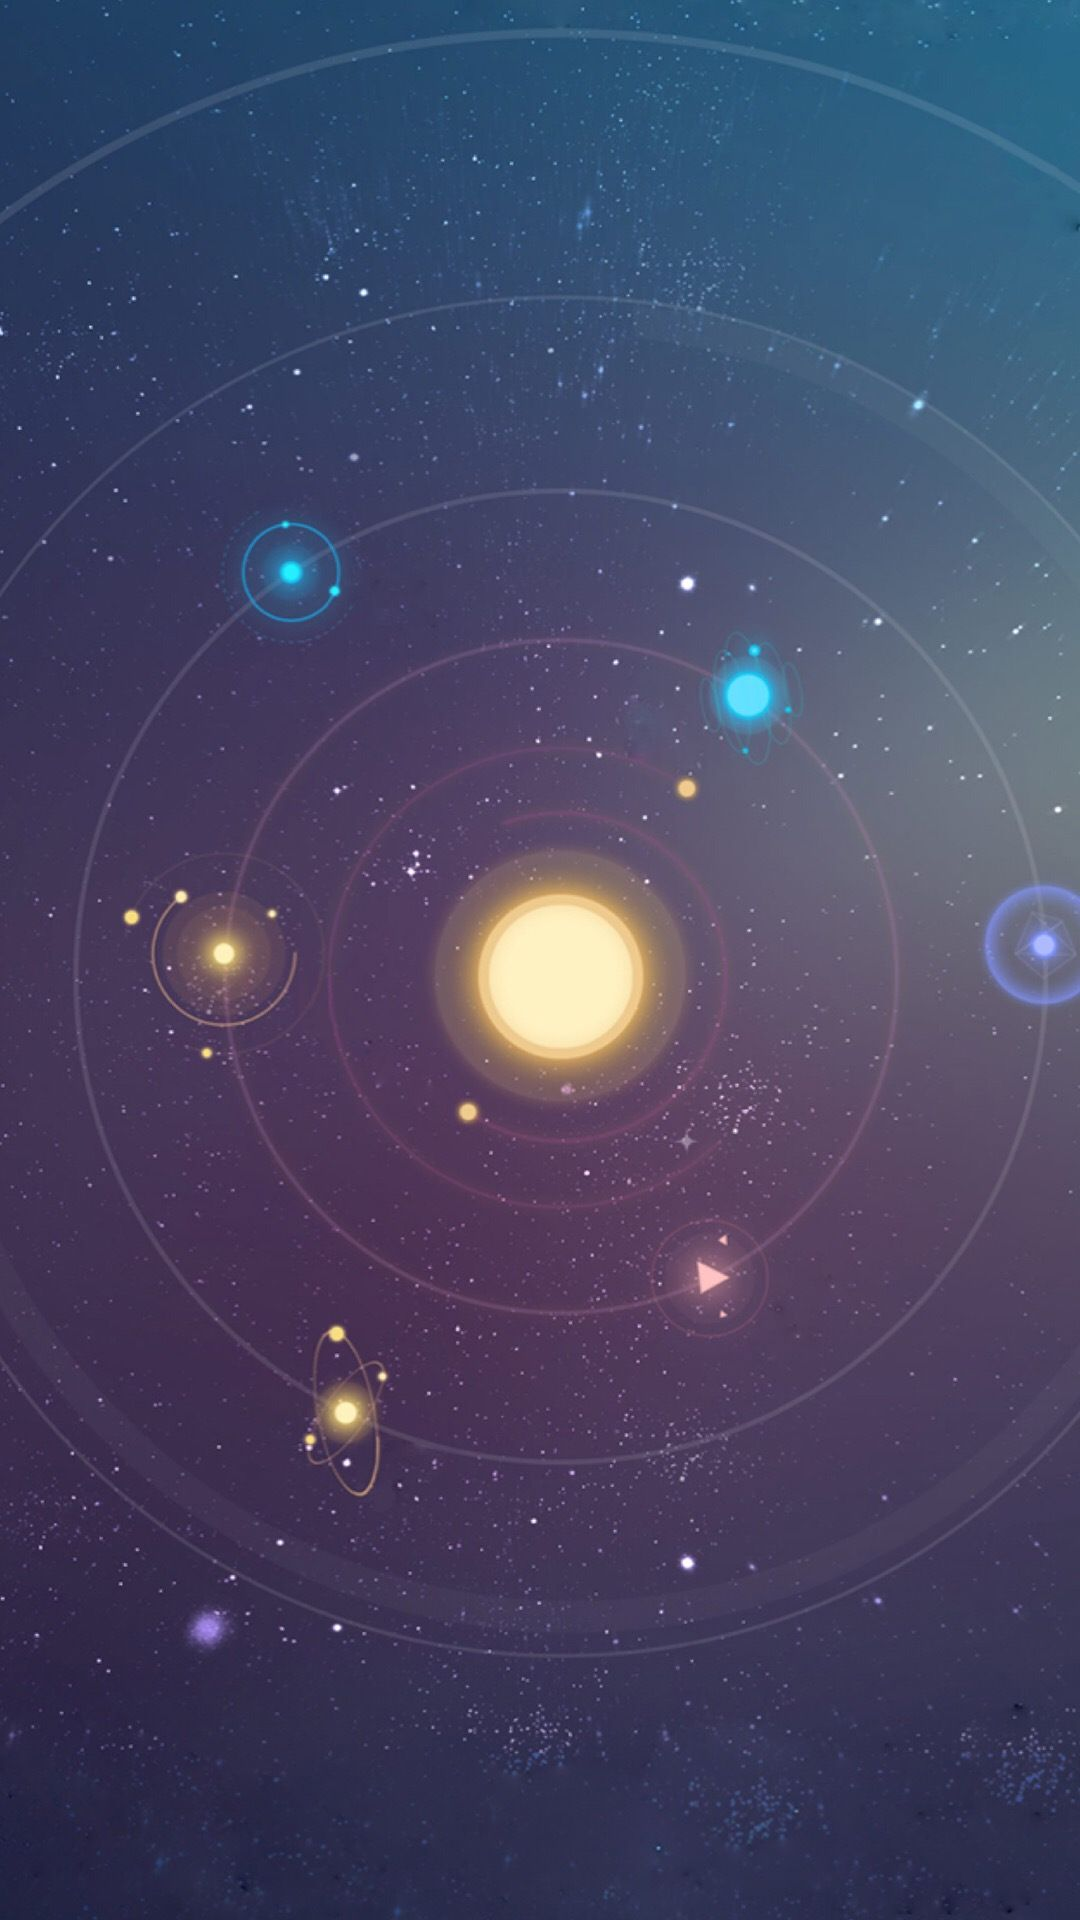 Cute Space Wallpaper Background for Your Android